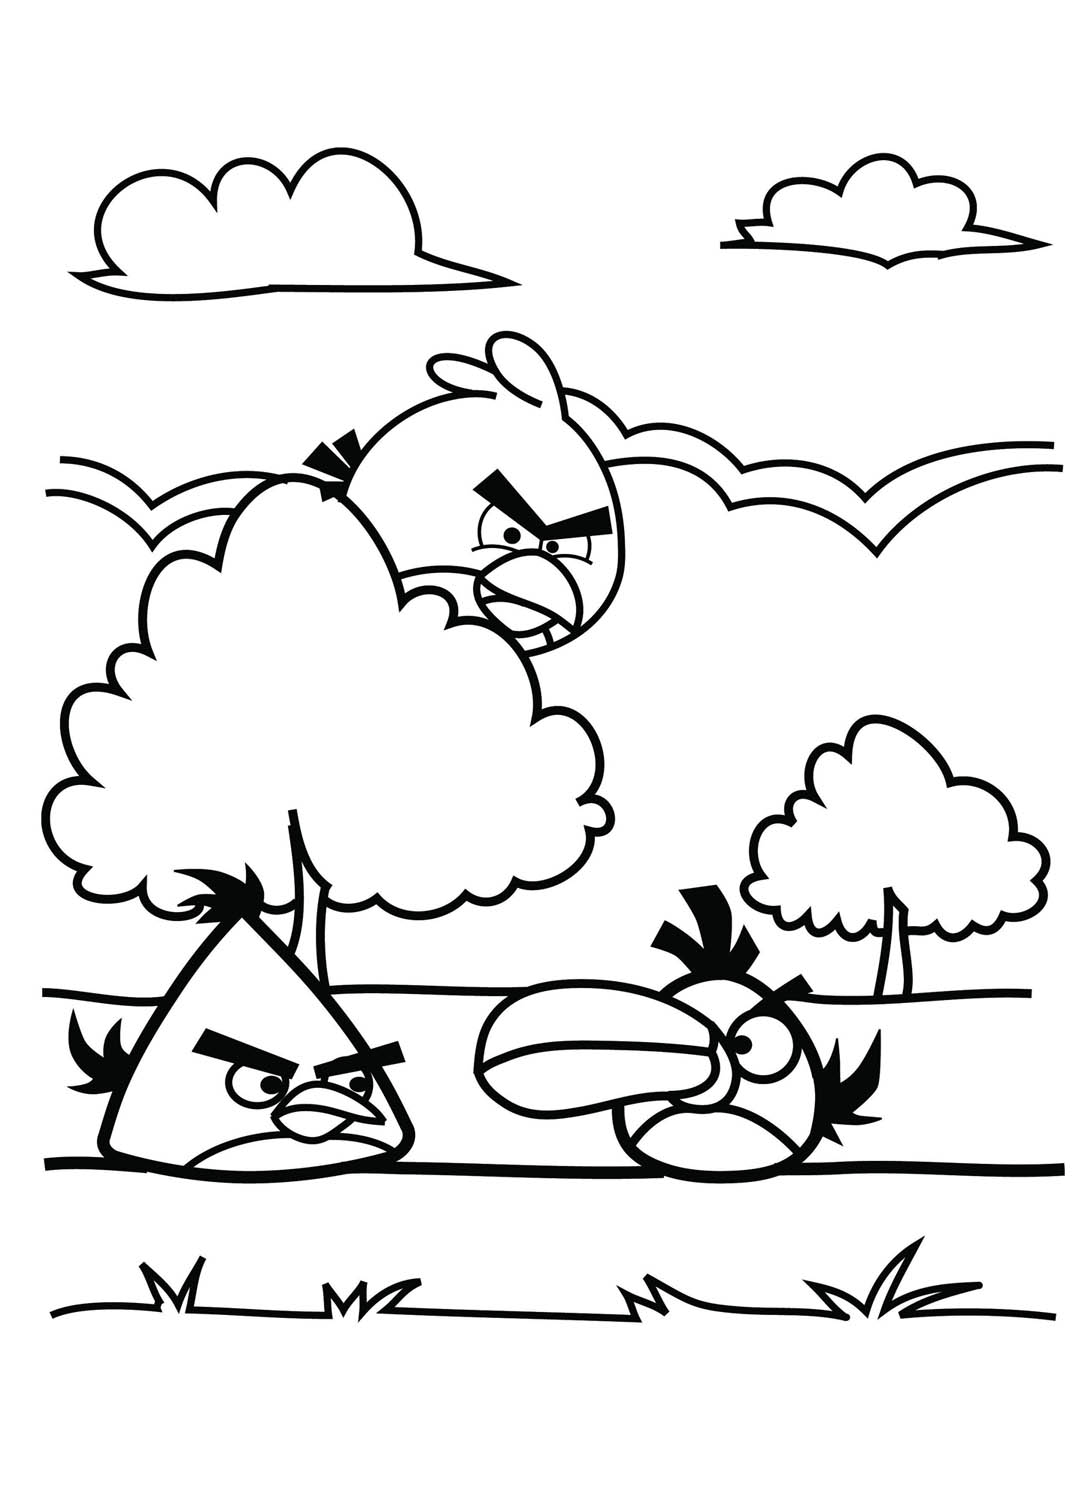 Angry birds for children - Angry Birds Kids Coloring Pages